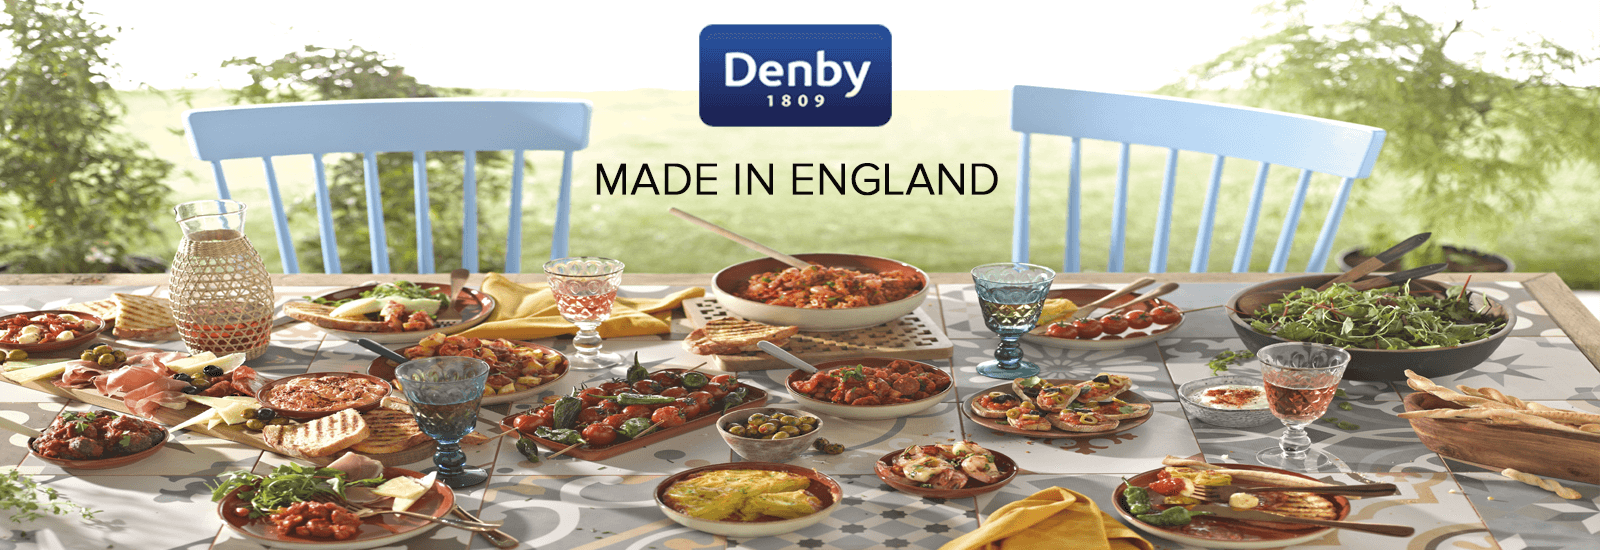 denby MAde in England